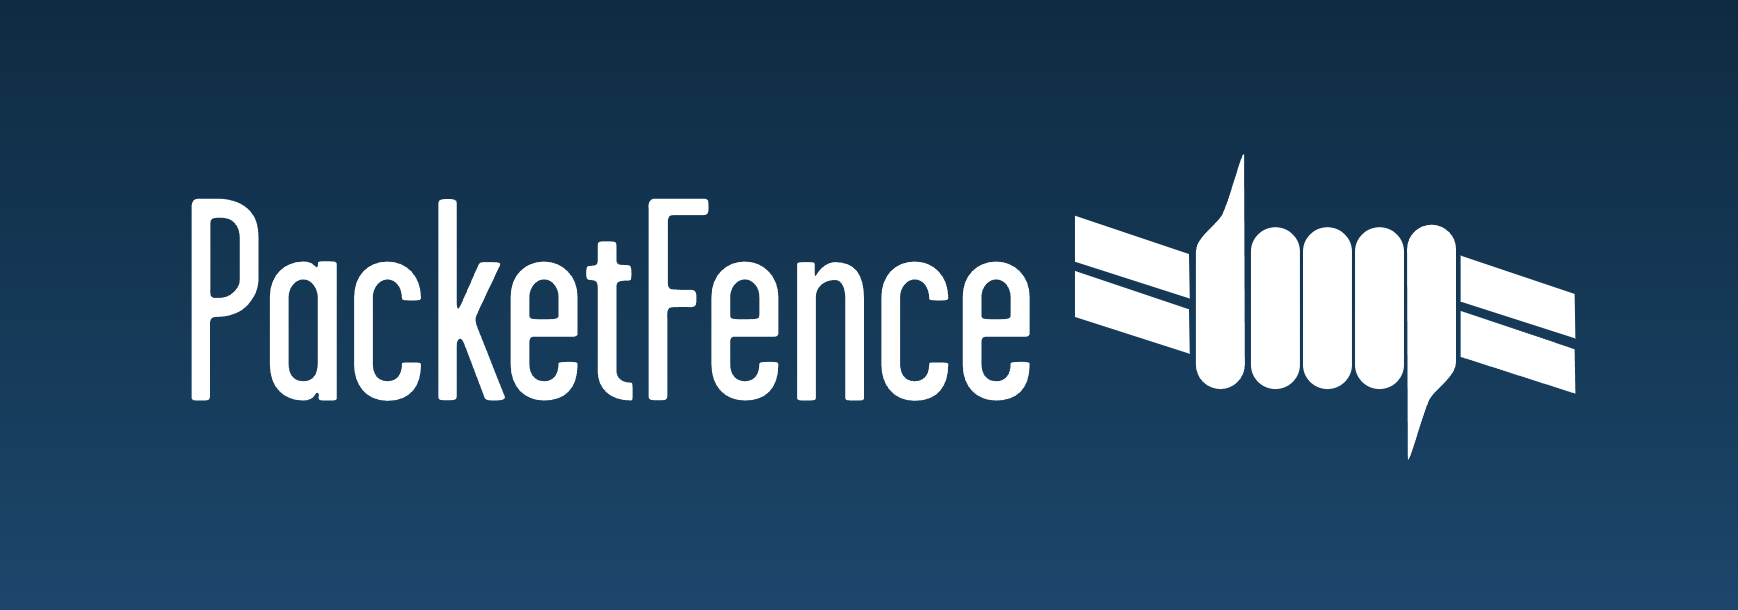 Protect Your Network with PacketFence